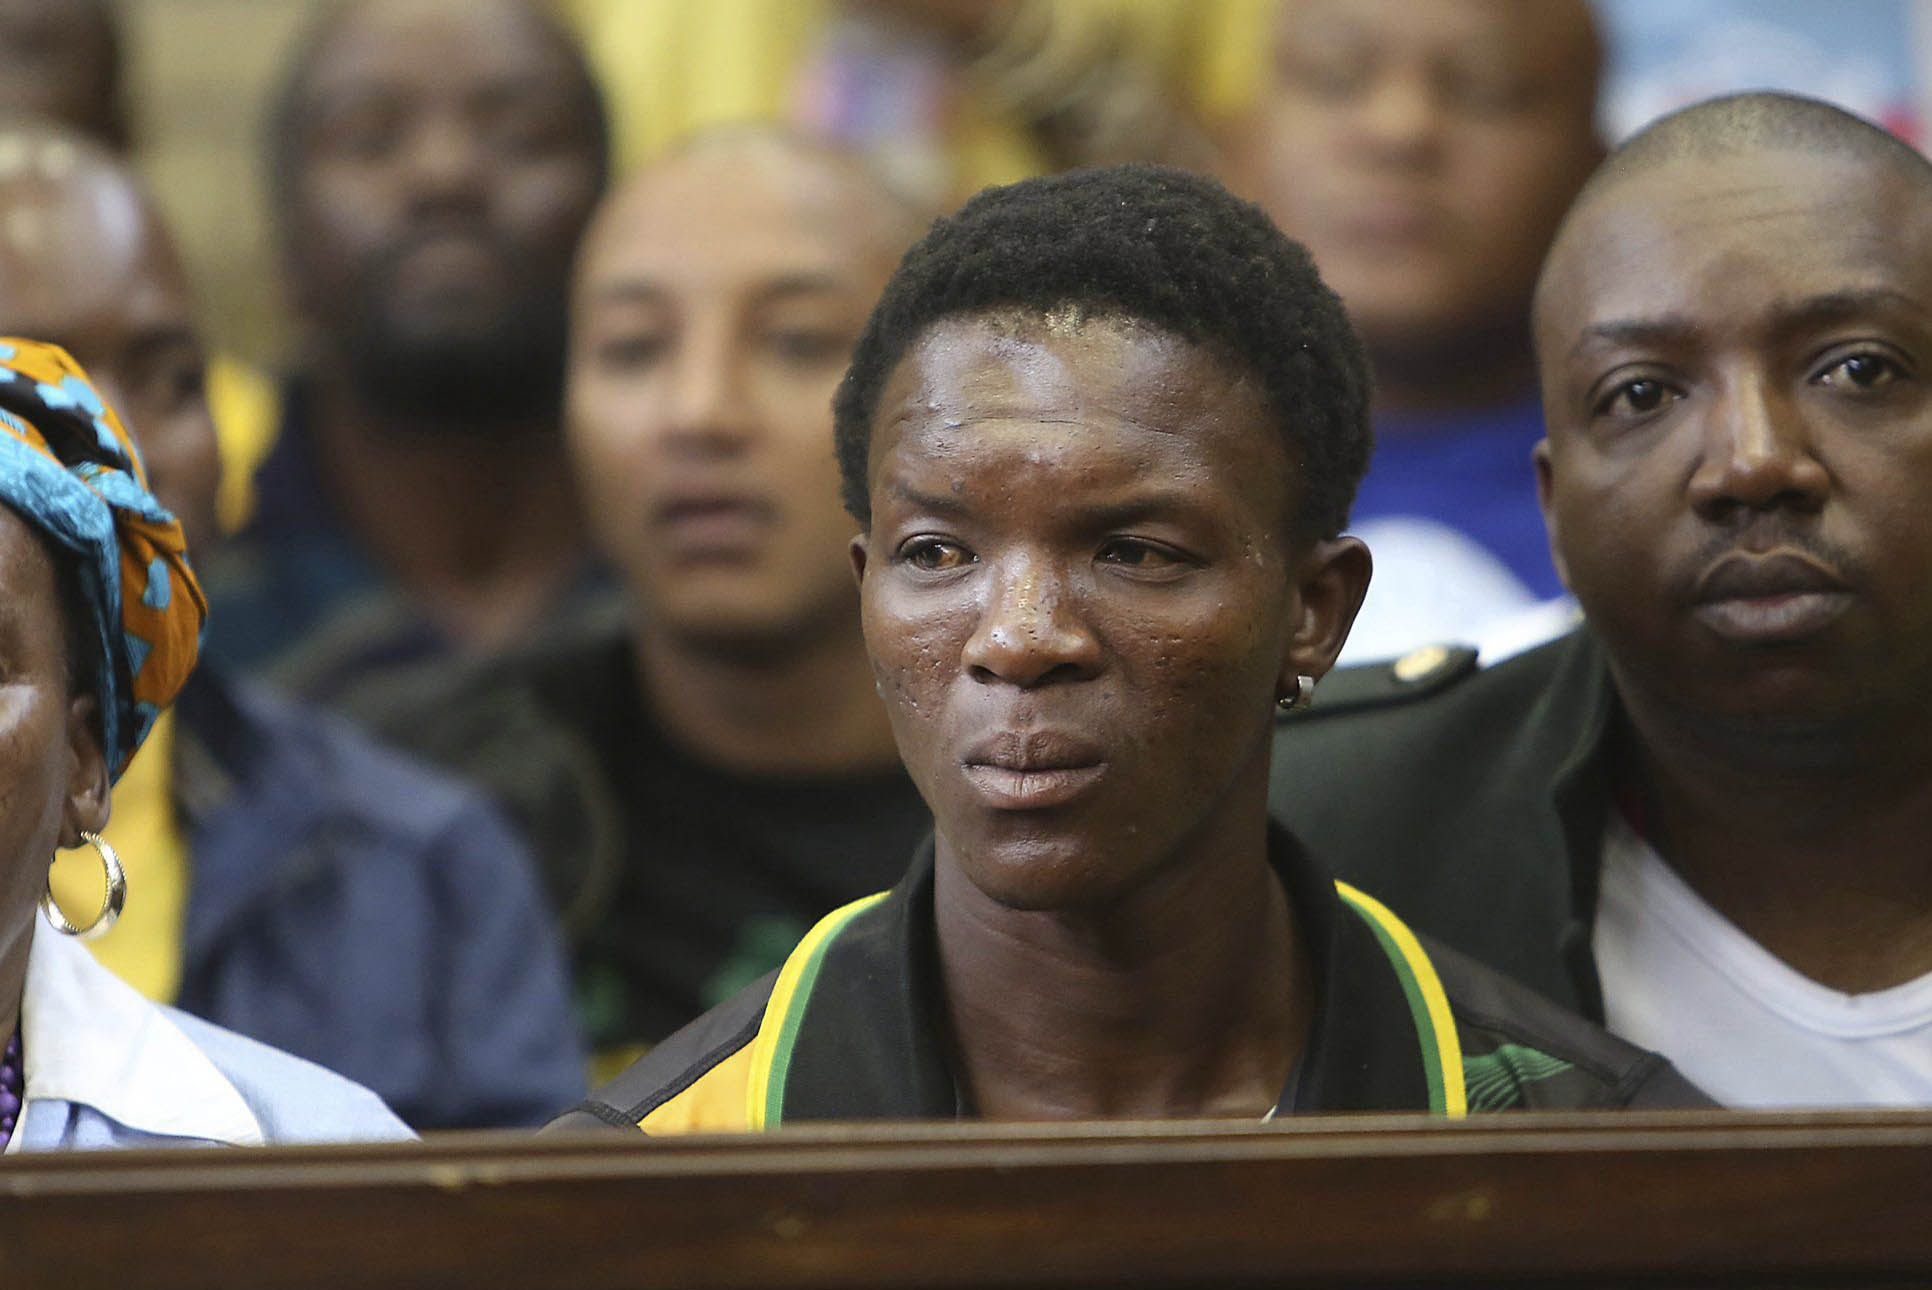 White Farmers Get Jail Time In South Africa